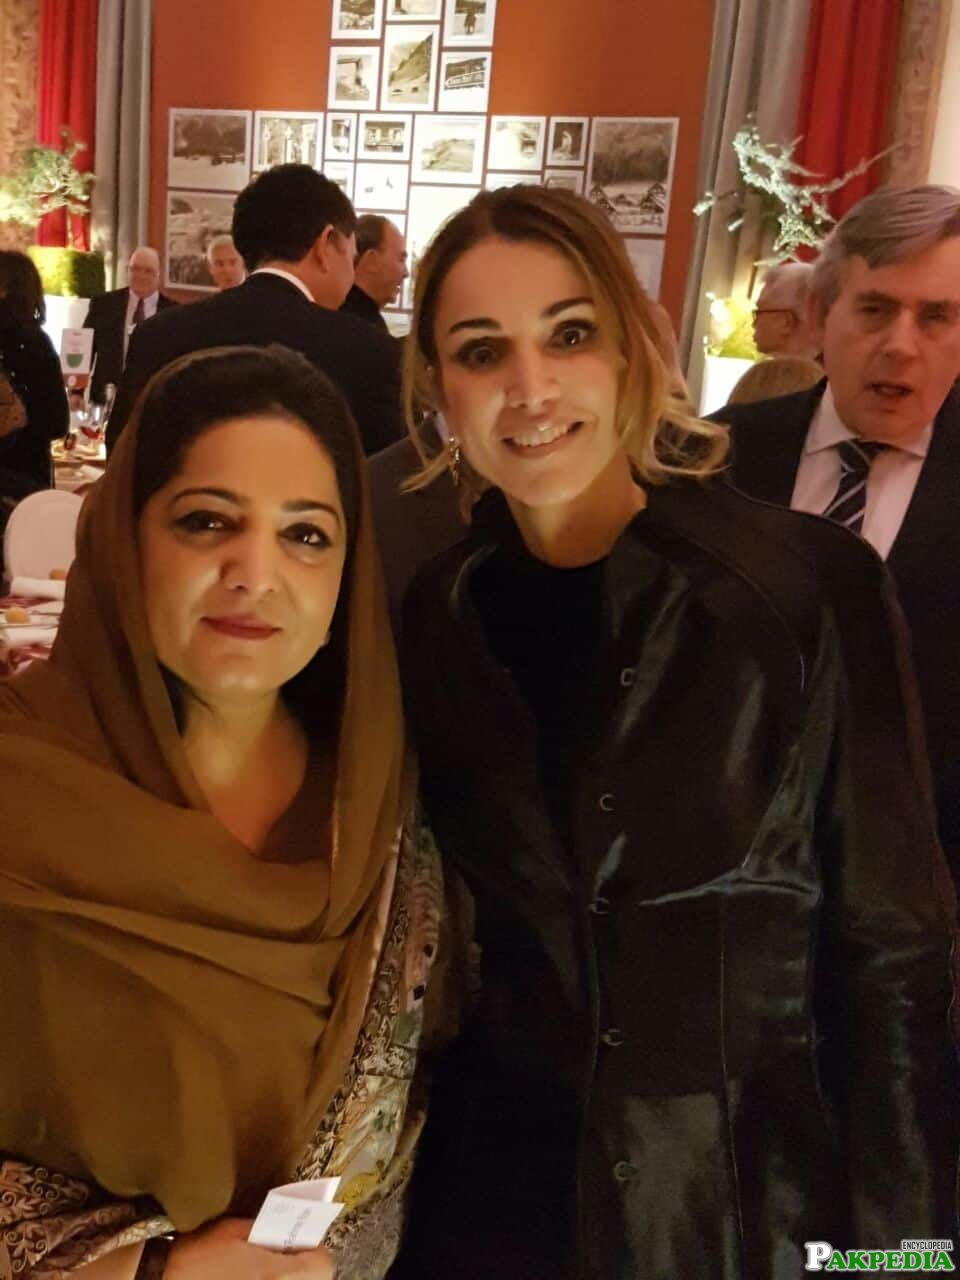 With Queen Rania